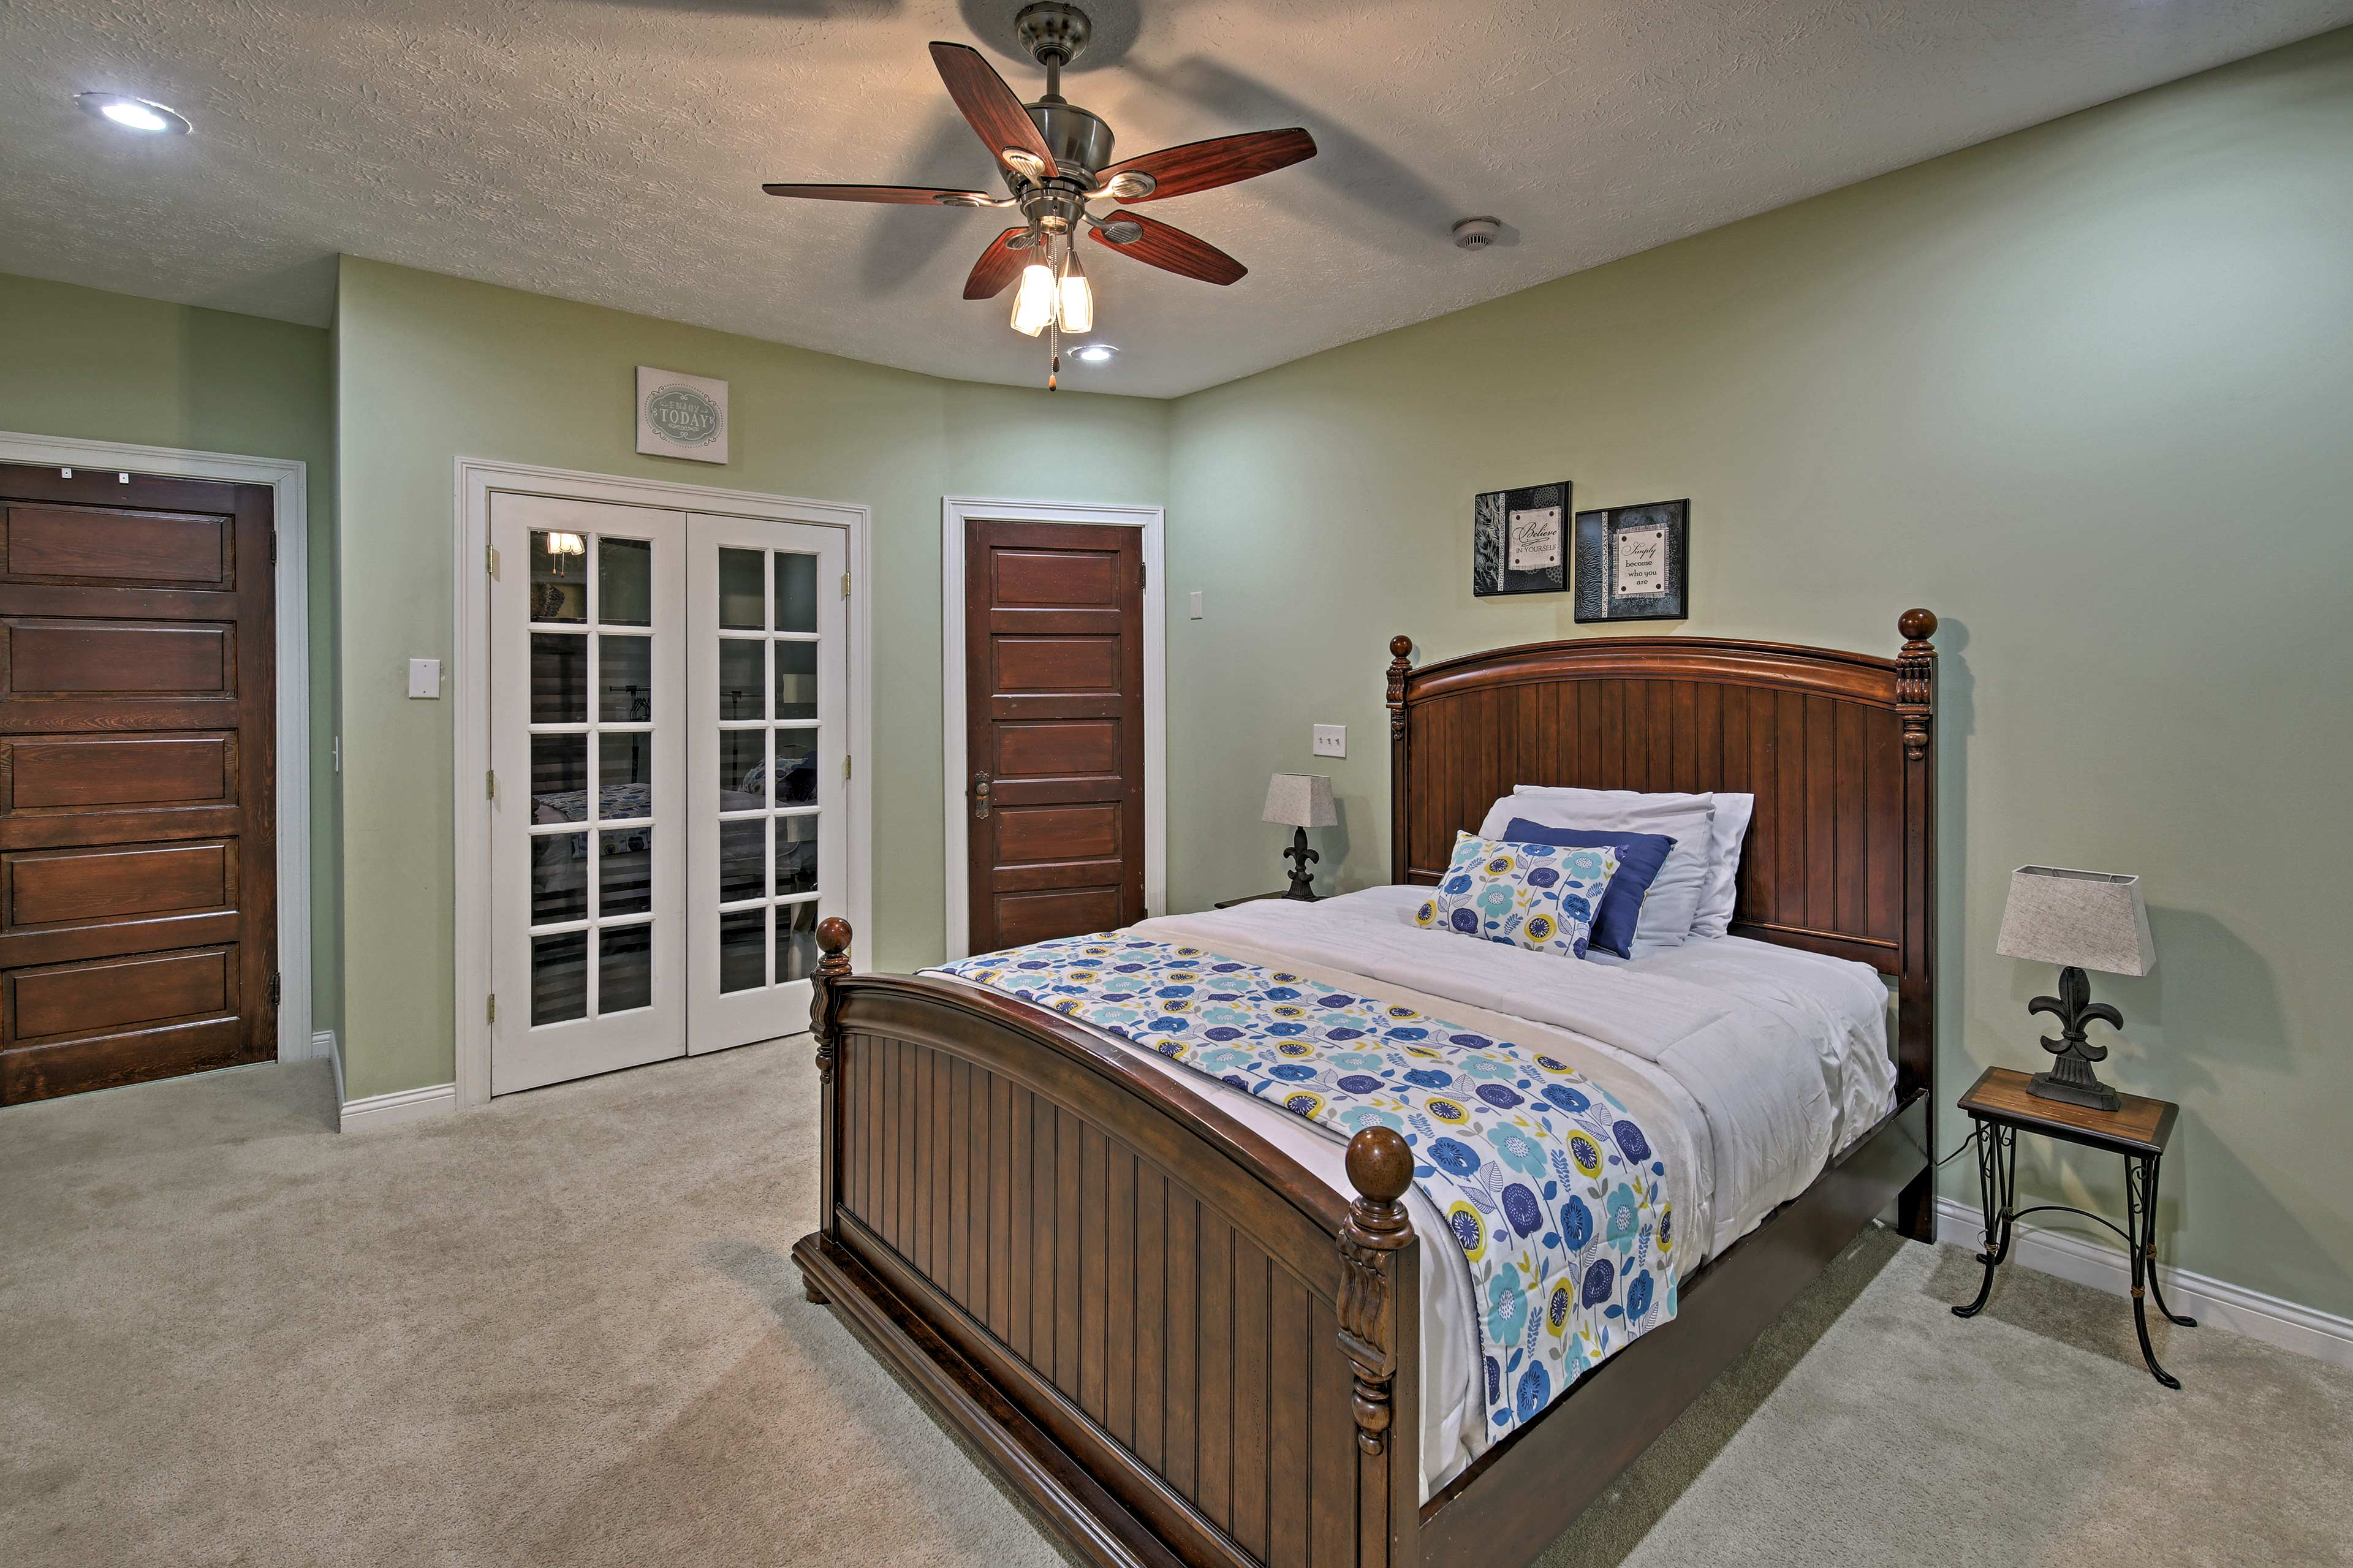 Dive under the covers of this queen bed!